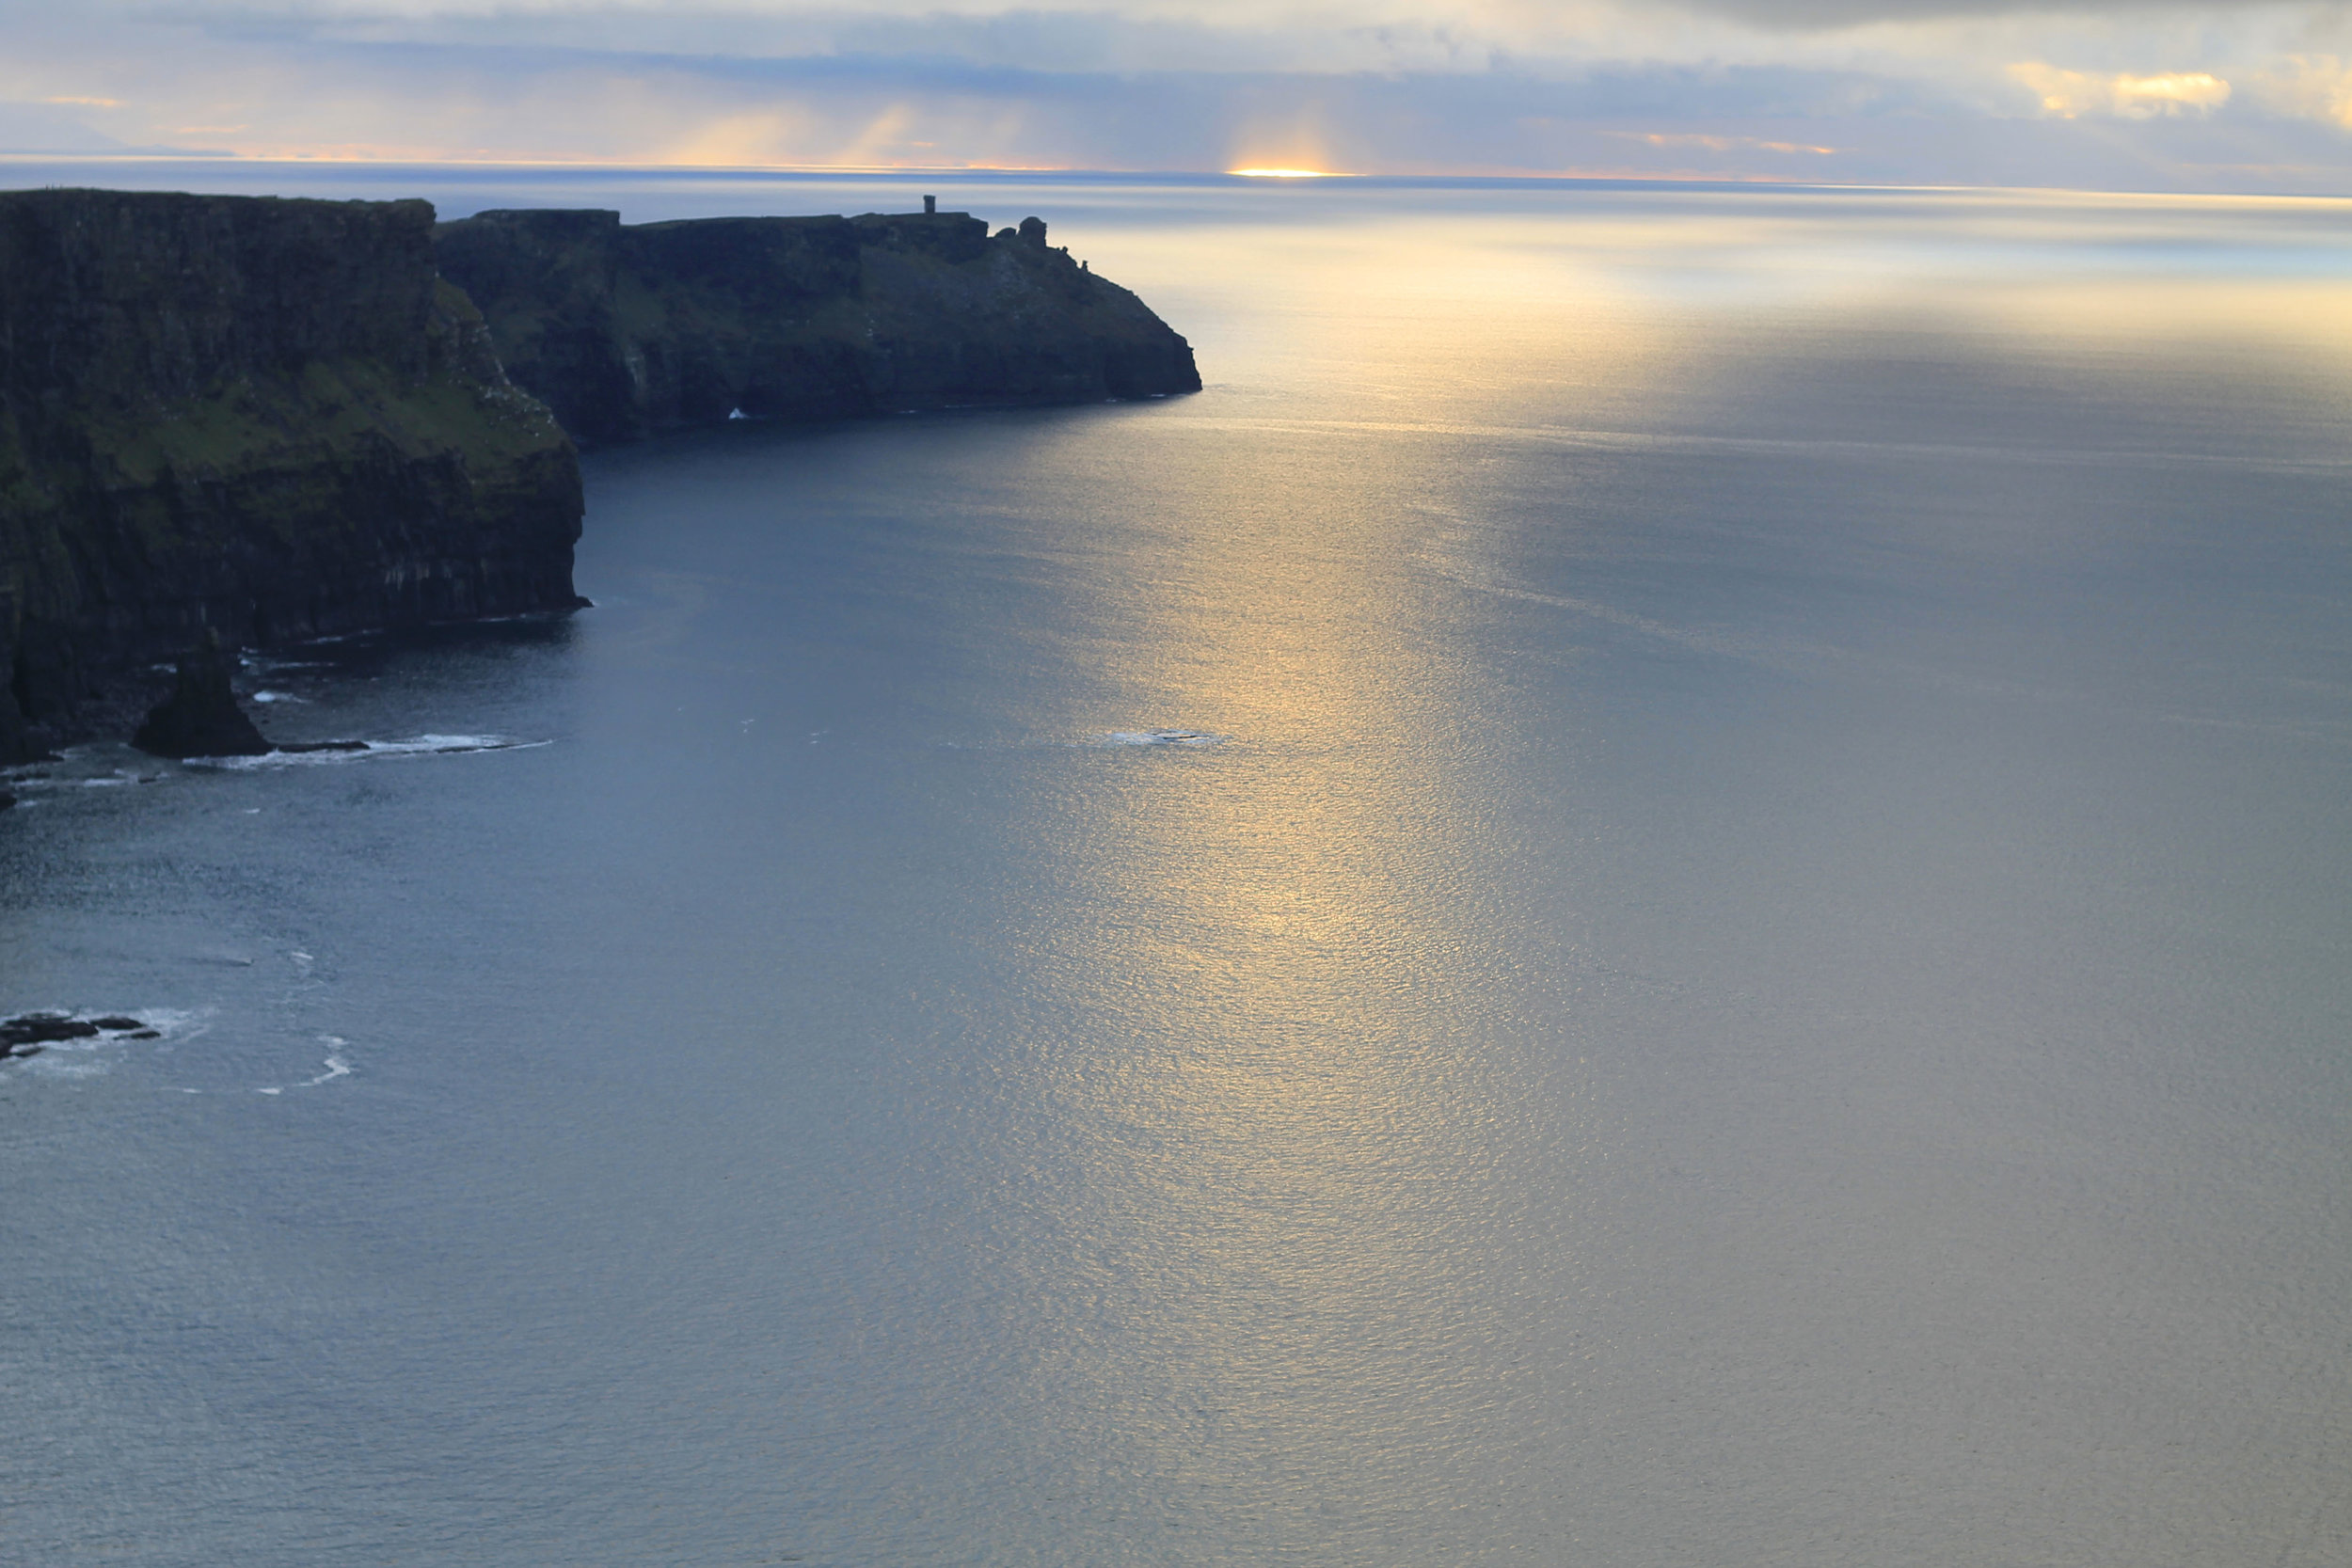 The Cliffs of Moher in Galway, Ireland